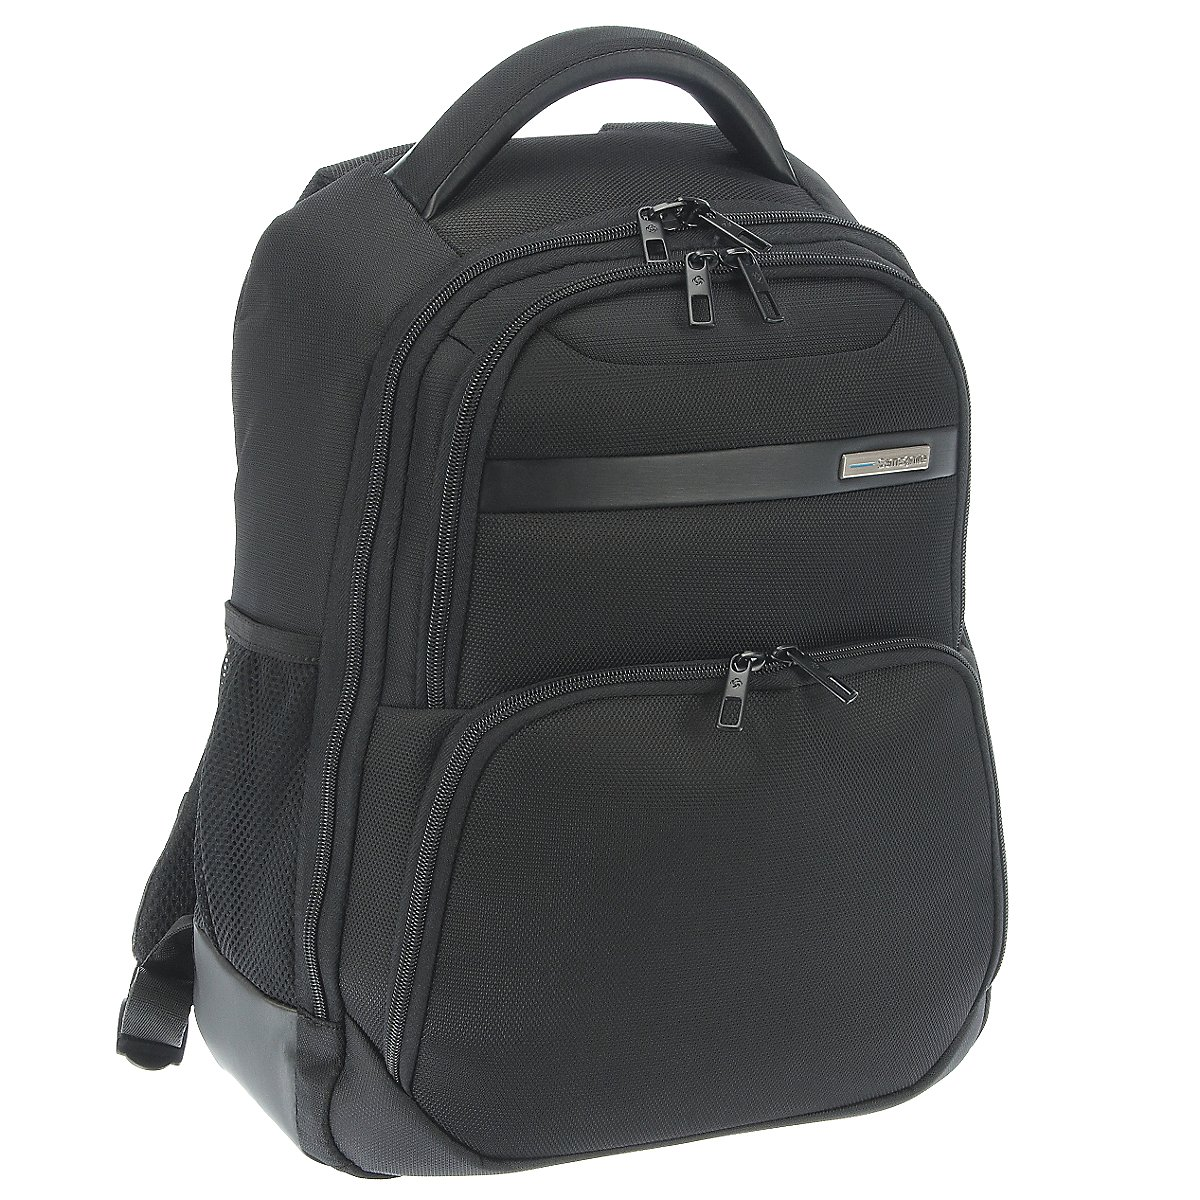 samsonite vectura backpack laptop rucksack 42 cm koffer. Black Bedroom Furniture Sets. Home Design Ideas